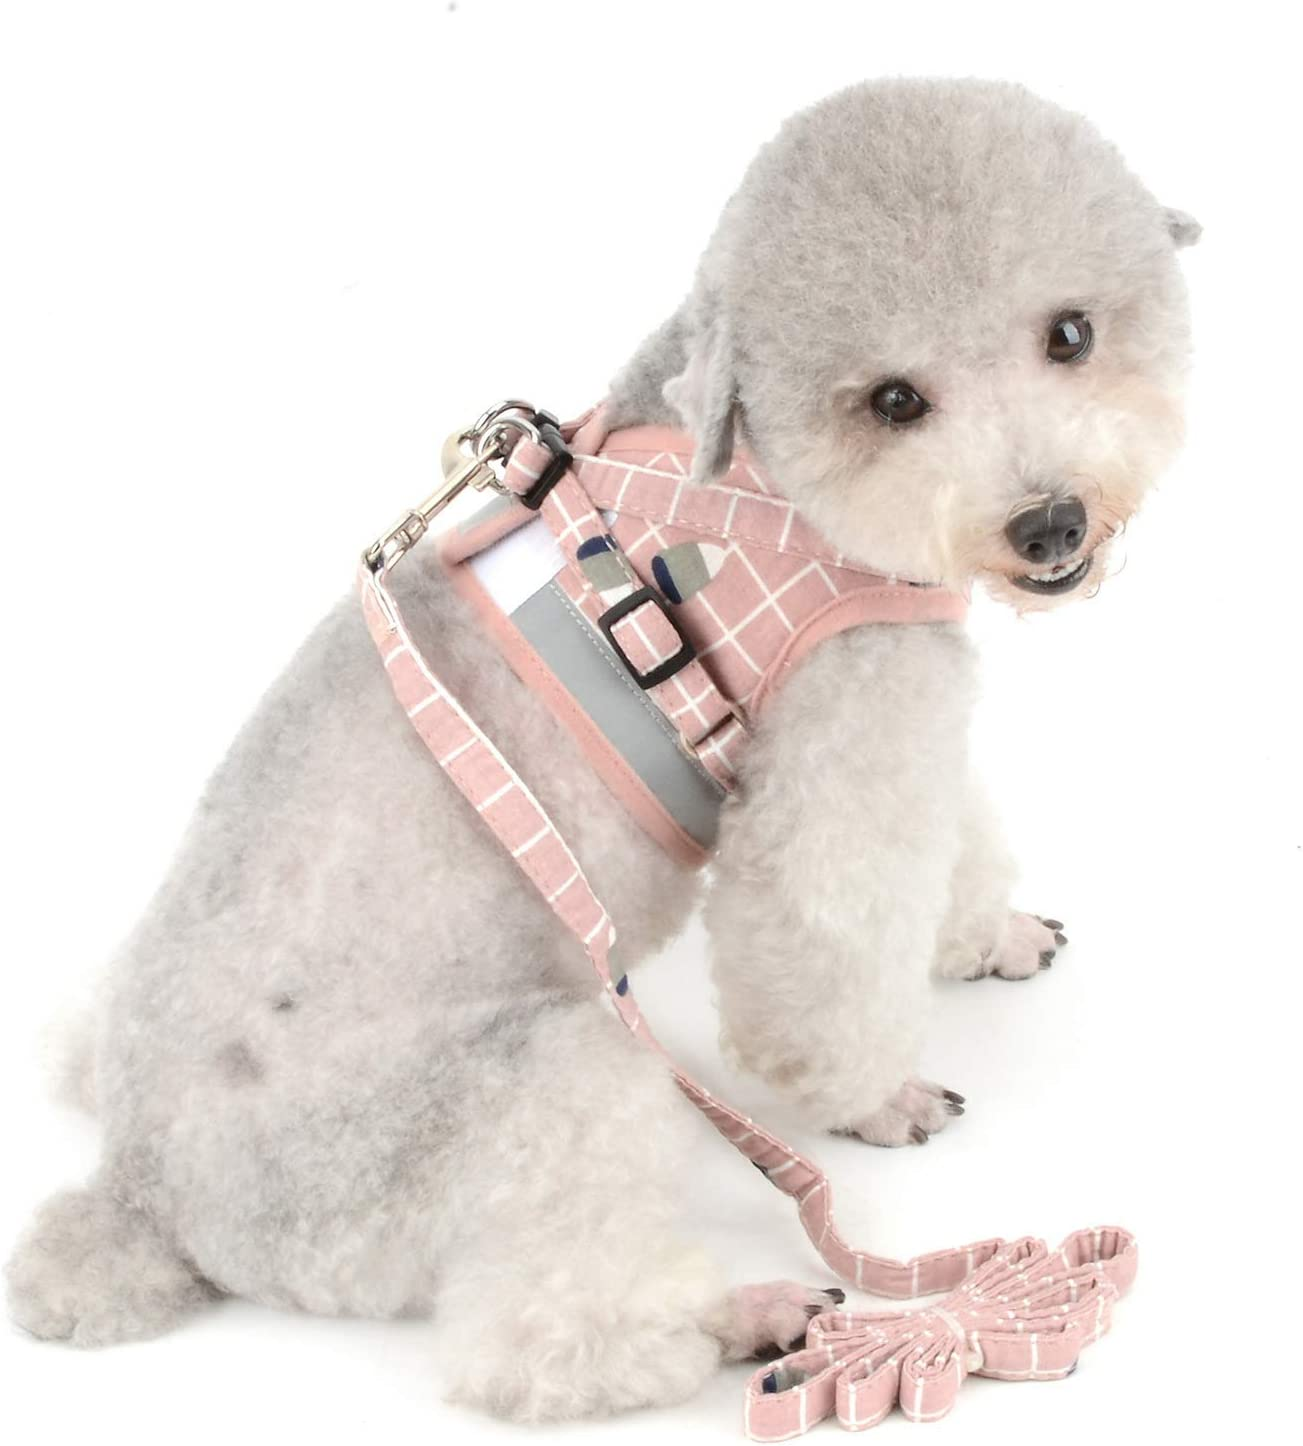 SMALLLEE/_LUCKY/_STORE Print Plaid Pet Harness Vest and Leash Set for Small Breed Dog Cat Reflctive Soft Nylon Mesh Padded Jacket 2 D-Ring Buckle Adjustable for Walking Hiking Outdoor Puppy Clothes